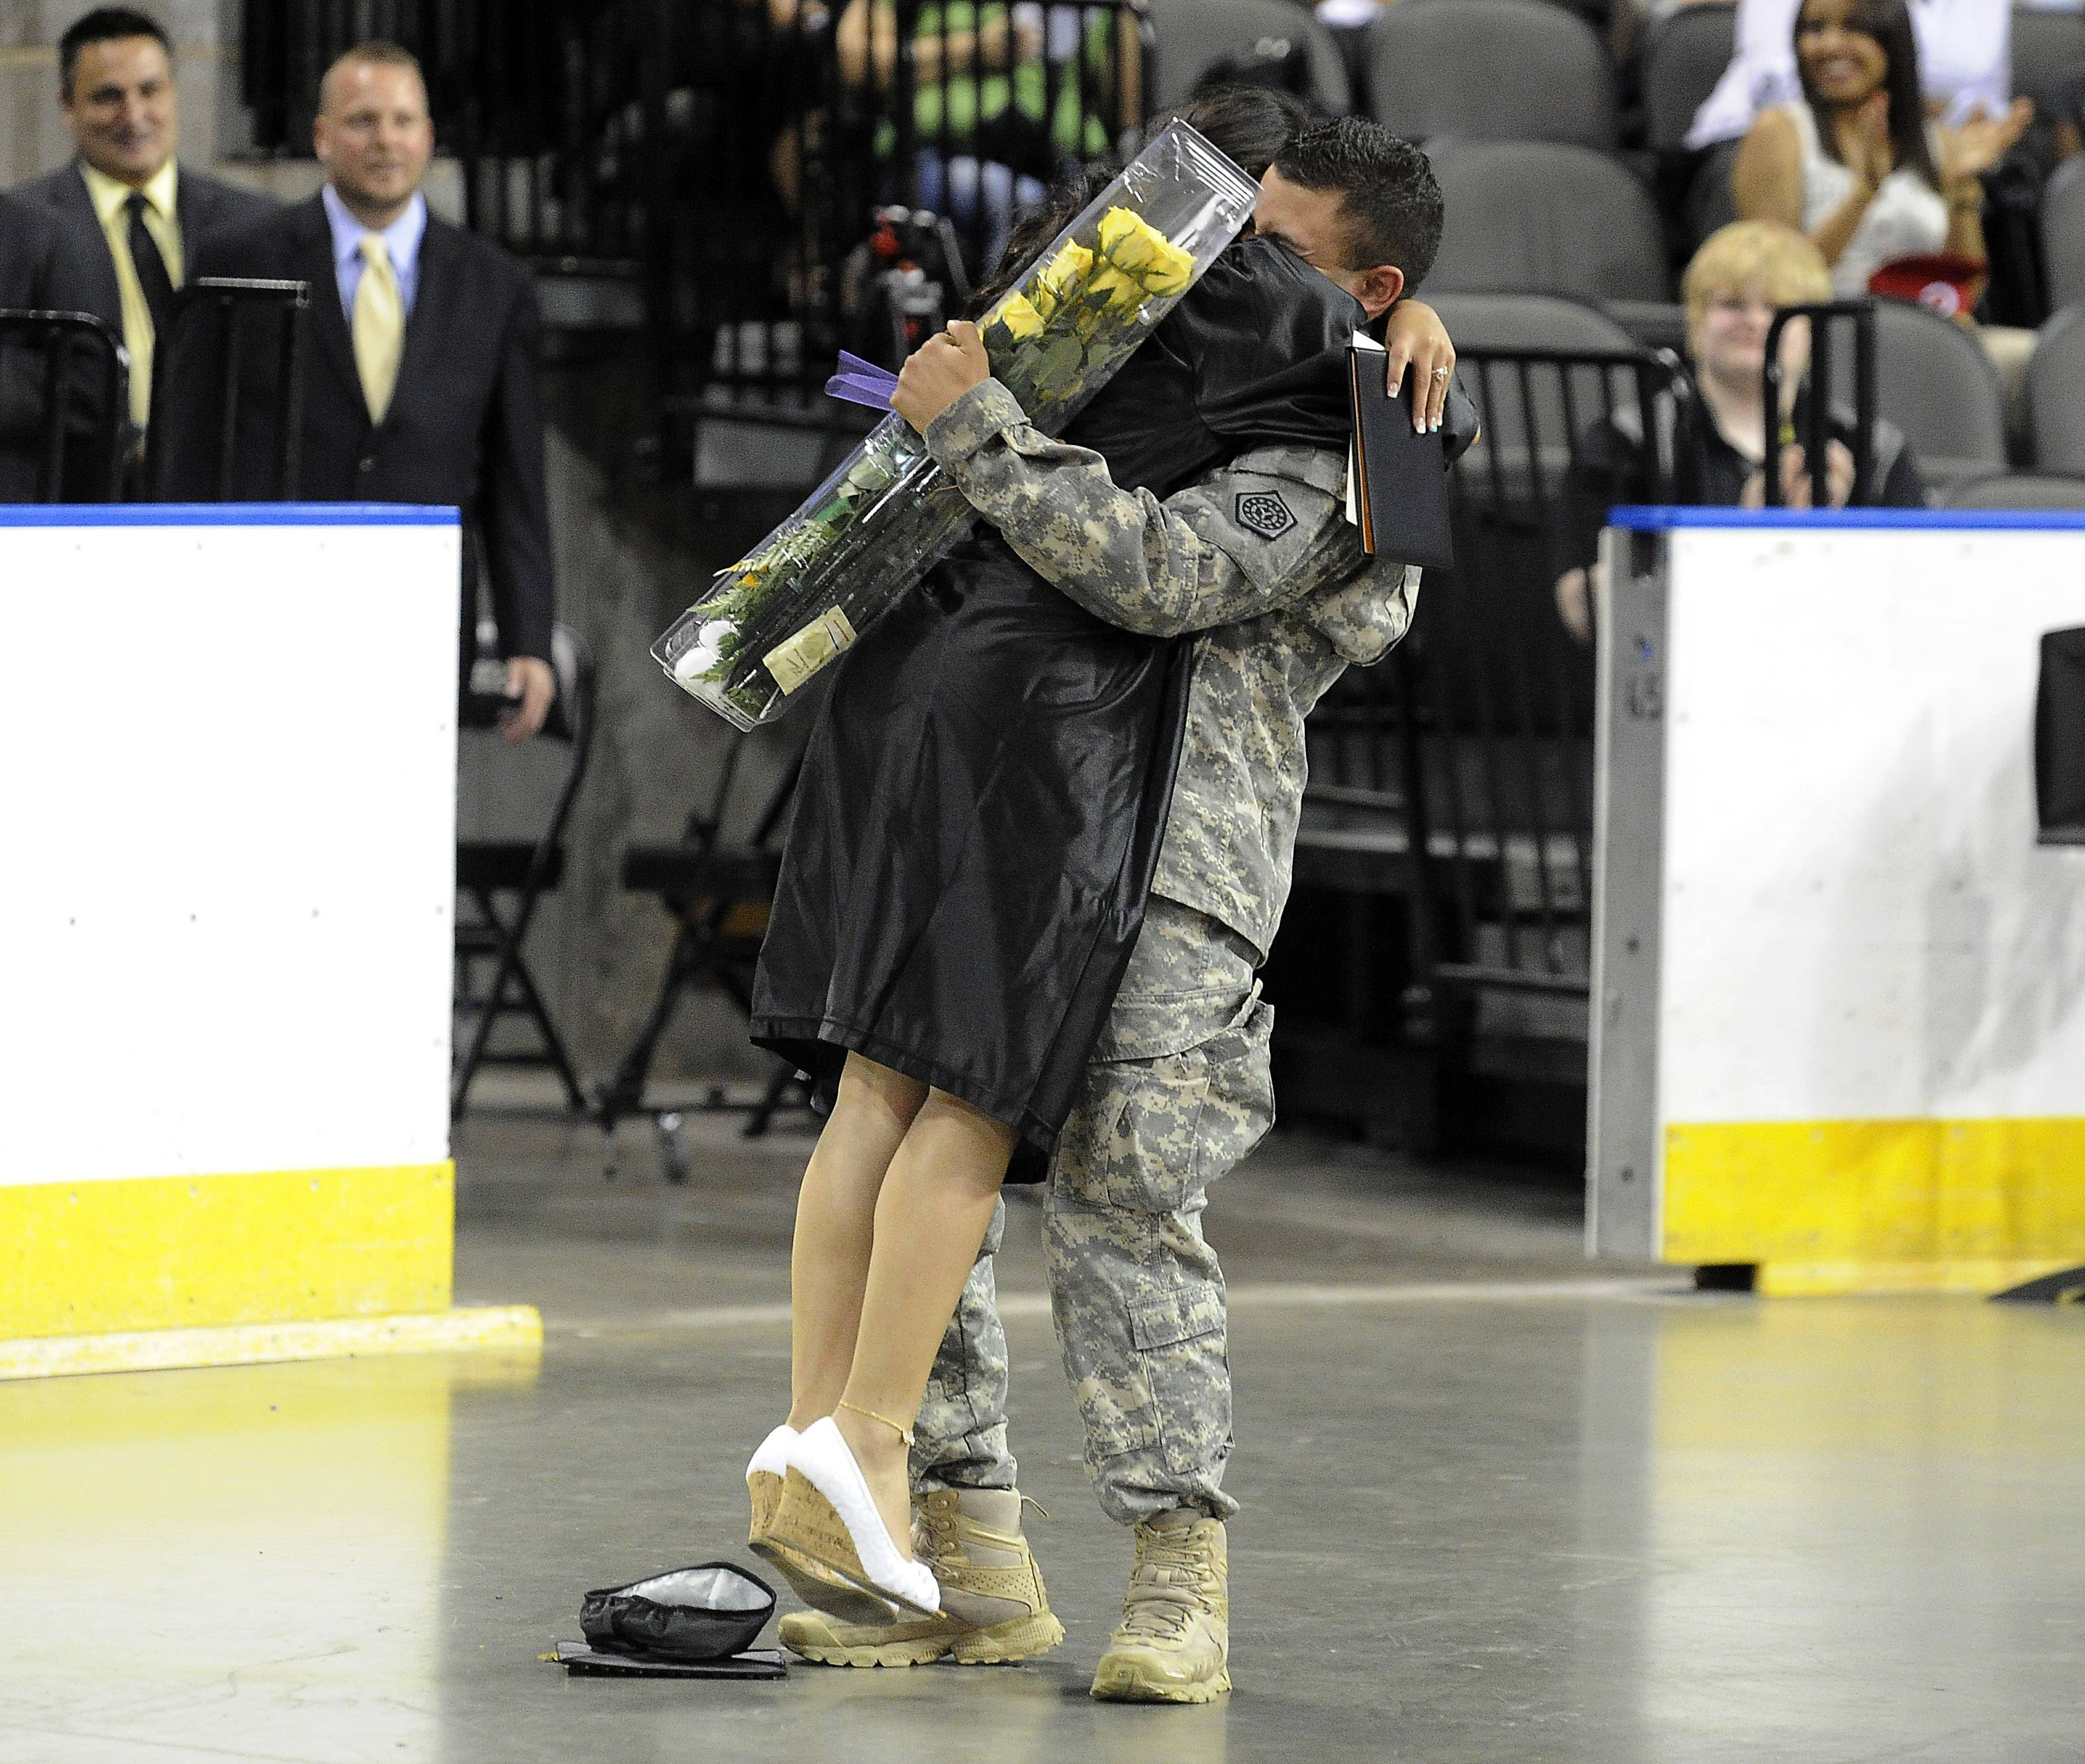 Robert Leal, 22, who is in the Army surprises his cousin Myranda Rico, 17, of Streamwood as the 35th commencement exercises at  the Sears Centre in Hoffman Estates on Saturday. It has been 8 months since they have seen each other.